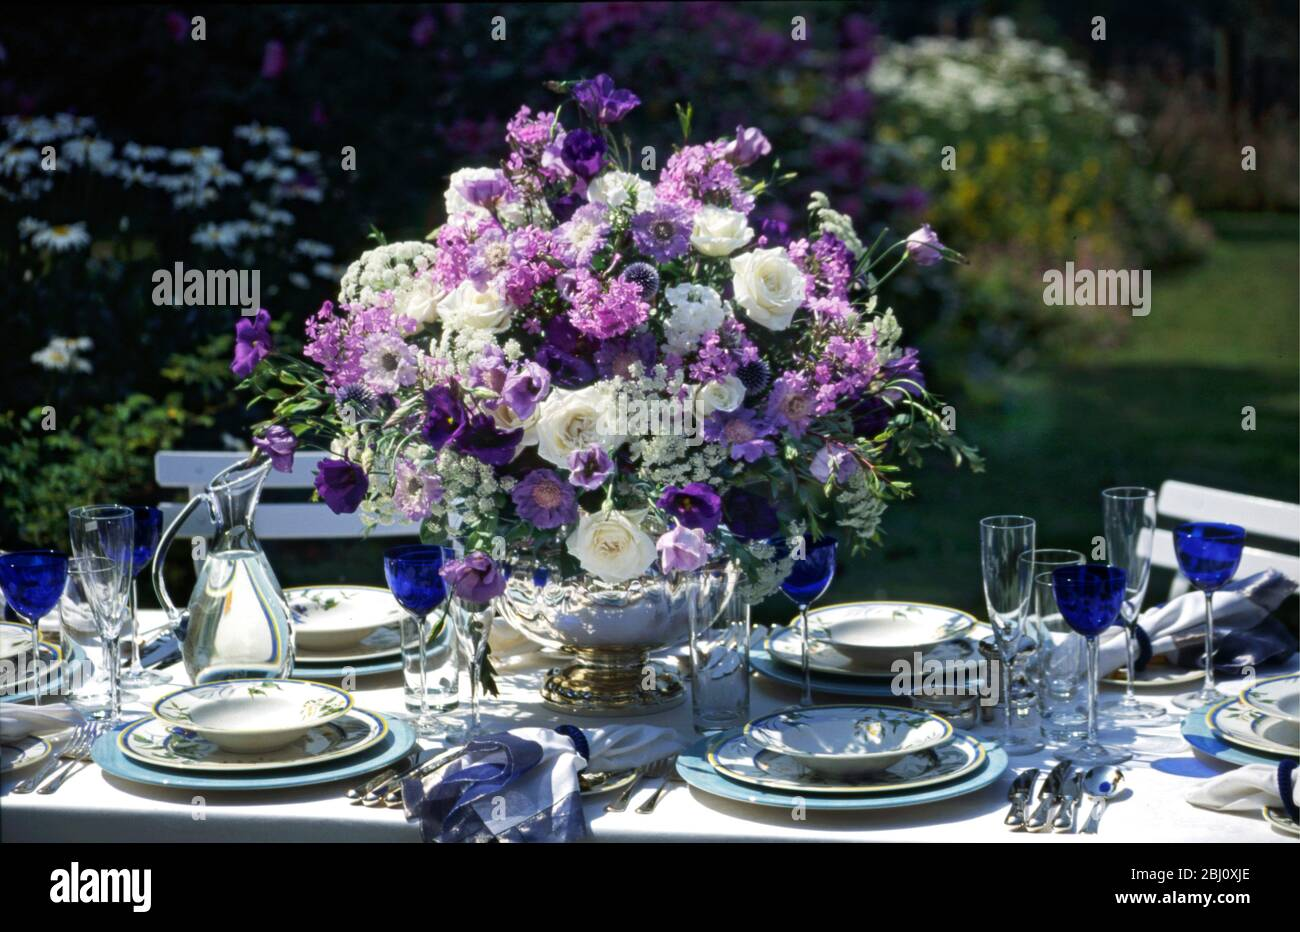 Amazing Blue And White Flower Arrangement In The Middle Of Formal Table Setting Arranged Outside In Summer Garden Stock Photo Alamy